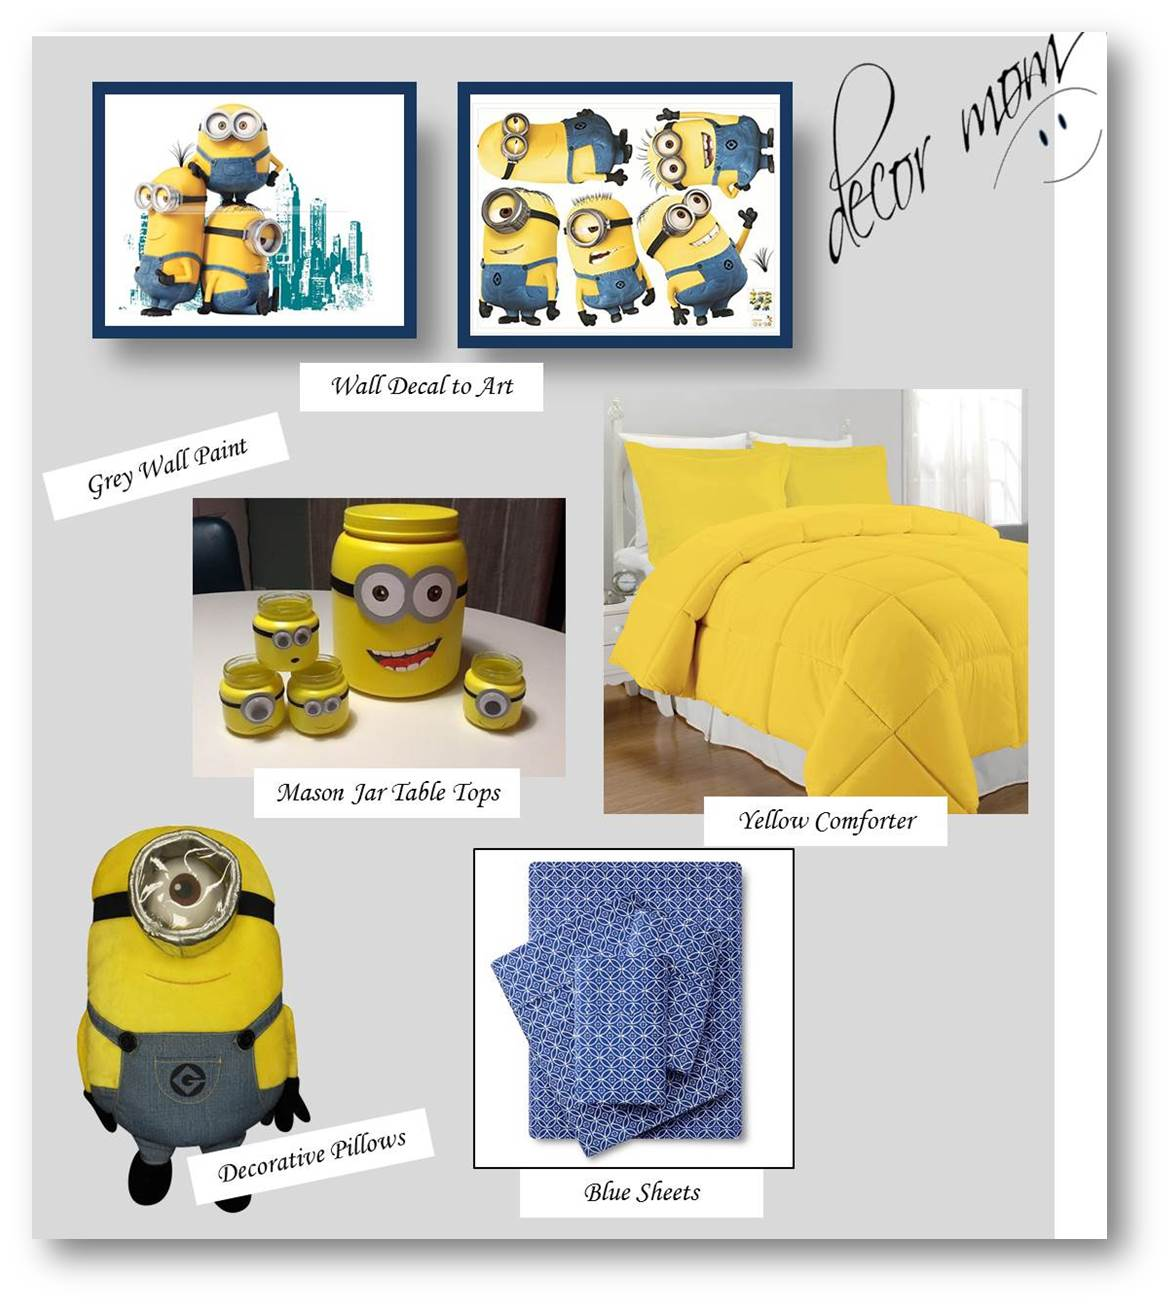 Minion Room Decor - Vision Board 2